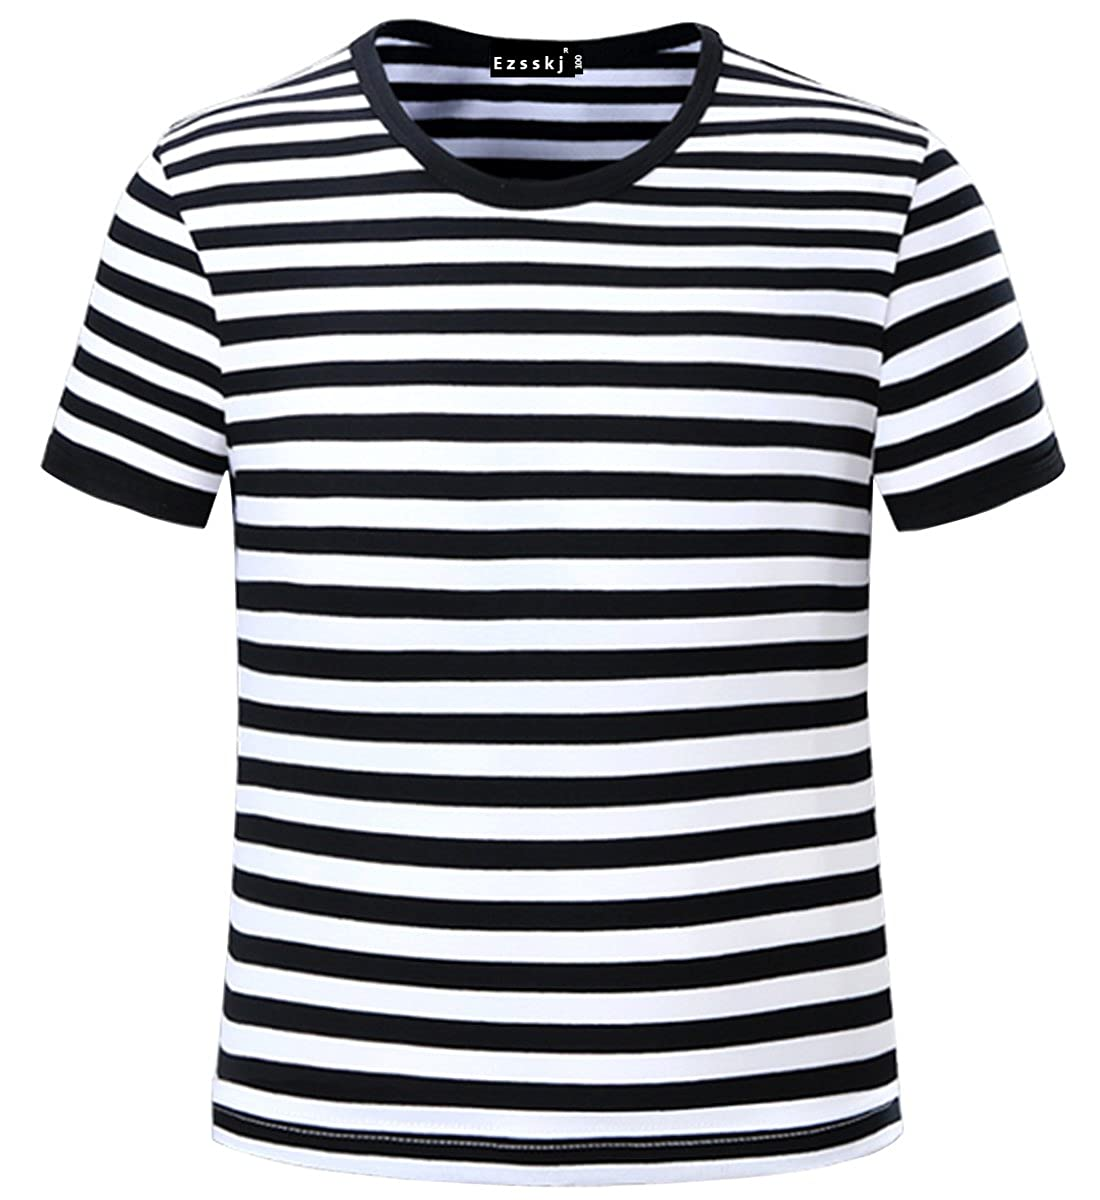 ea51a232c0a Amazon.com  Ezsskj Kids Boys Children s Toddler Striped T Shirts Short  Sleeve Crew Neck Stripes Tee  Clothing